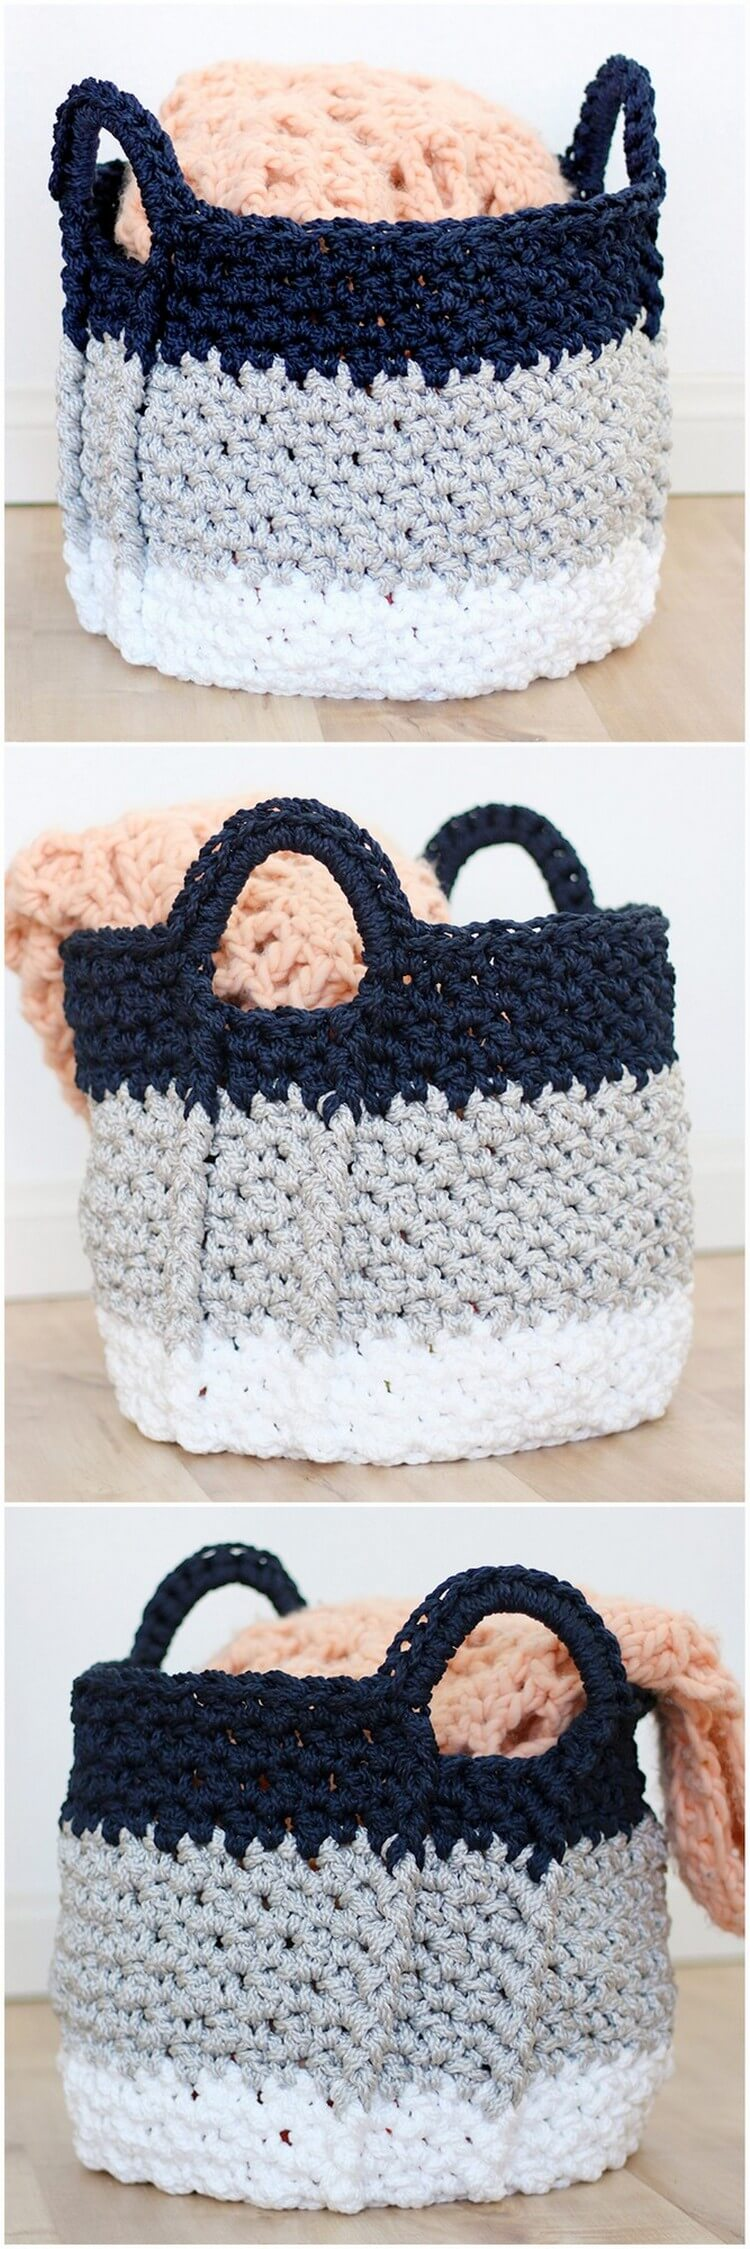 Crochet Basket Pattern (1)